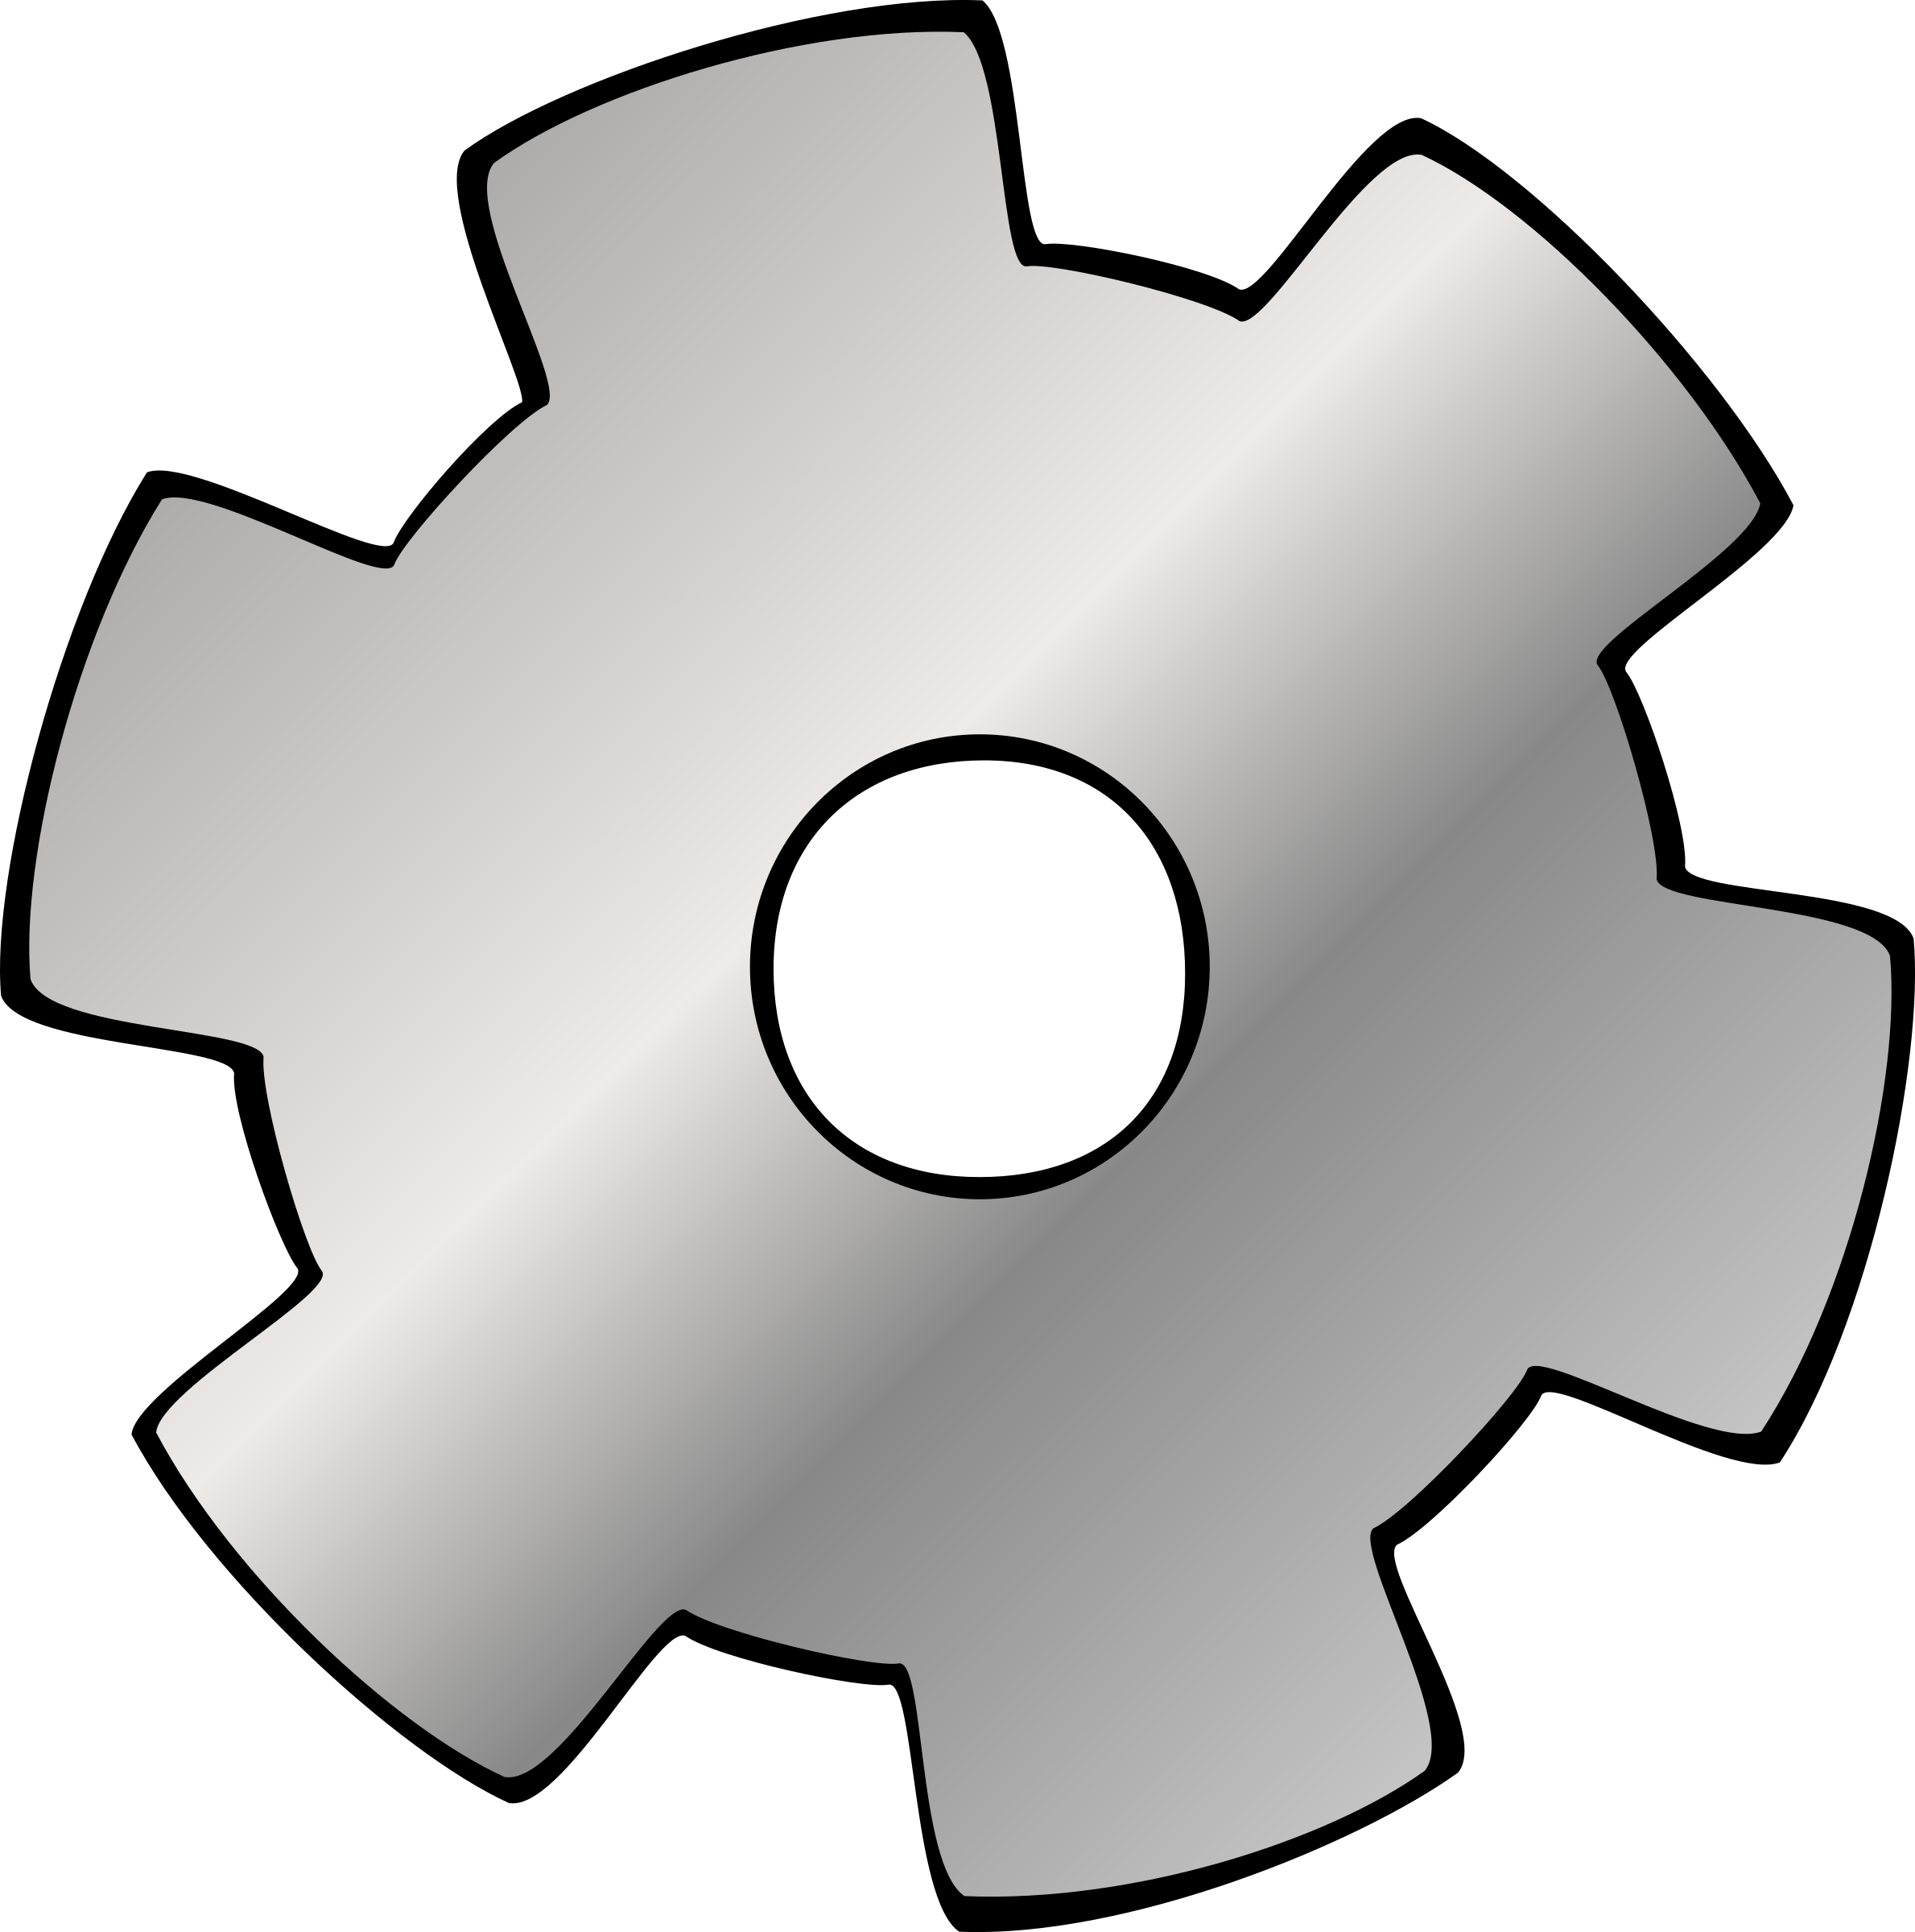 Gears clipart transparent Clipart Cliparts Gear and Art